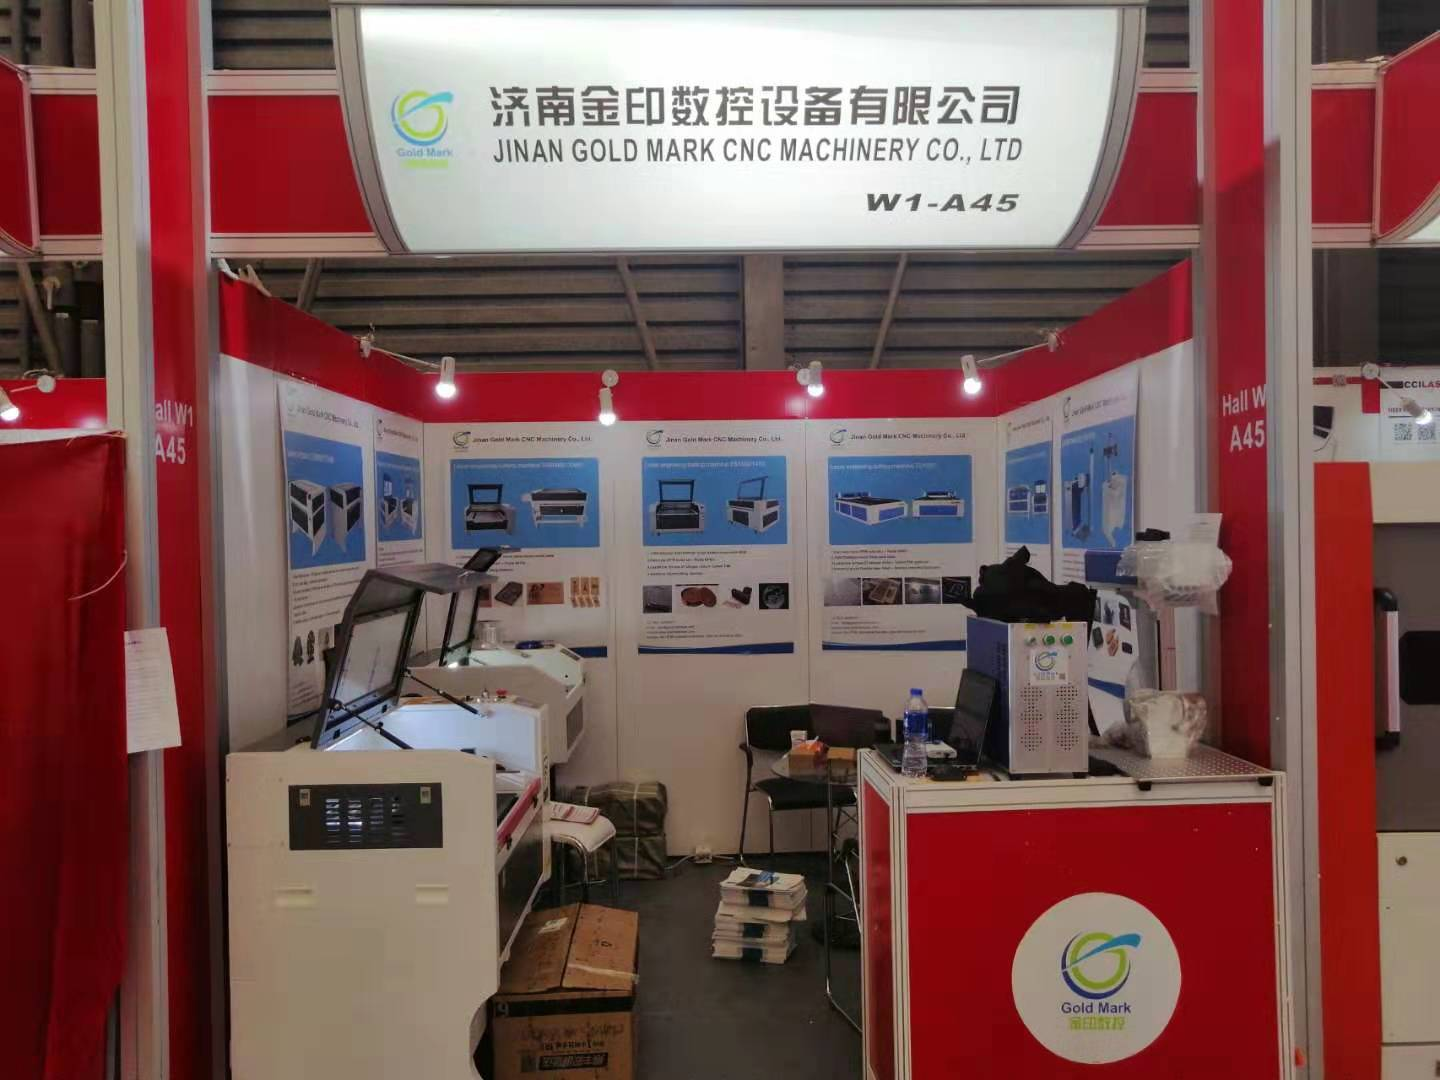 Jinan gold mark cnc machiner co.,ltd. with star products unveiled the SIGN CHINA 2019 advertising logo exhibition.